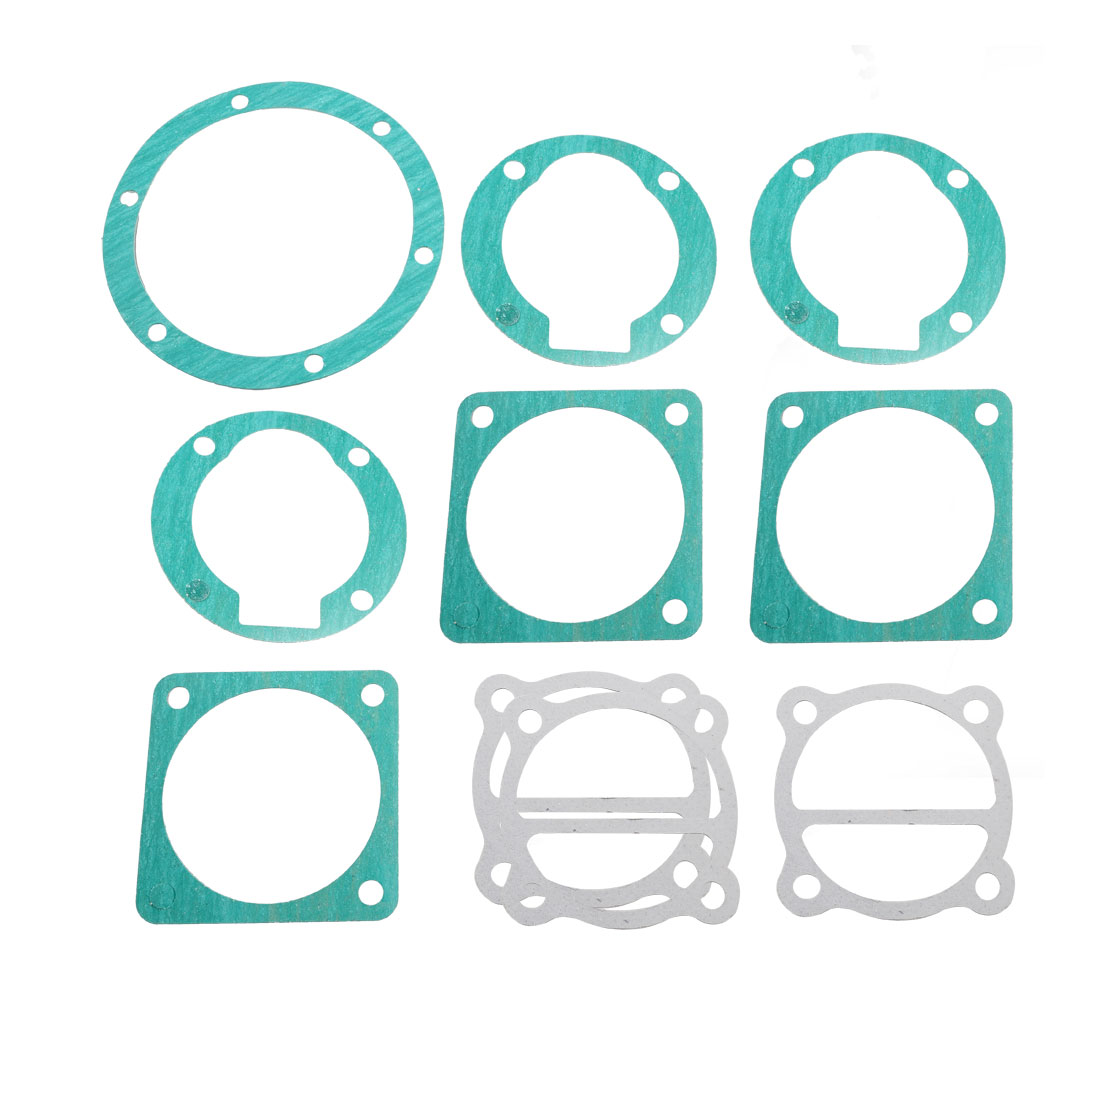 10 Pcs Paper Air Compressor Cylinder Head Base Valve Plate Sealing Gaskets